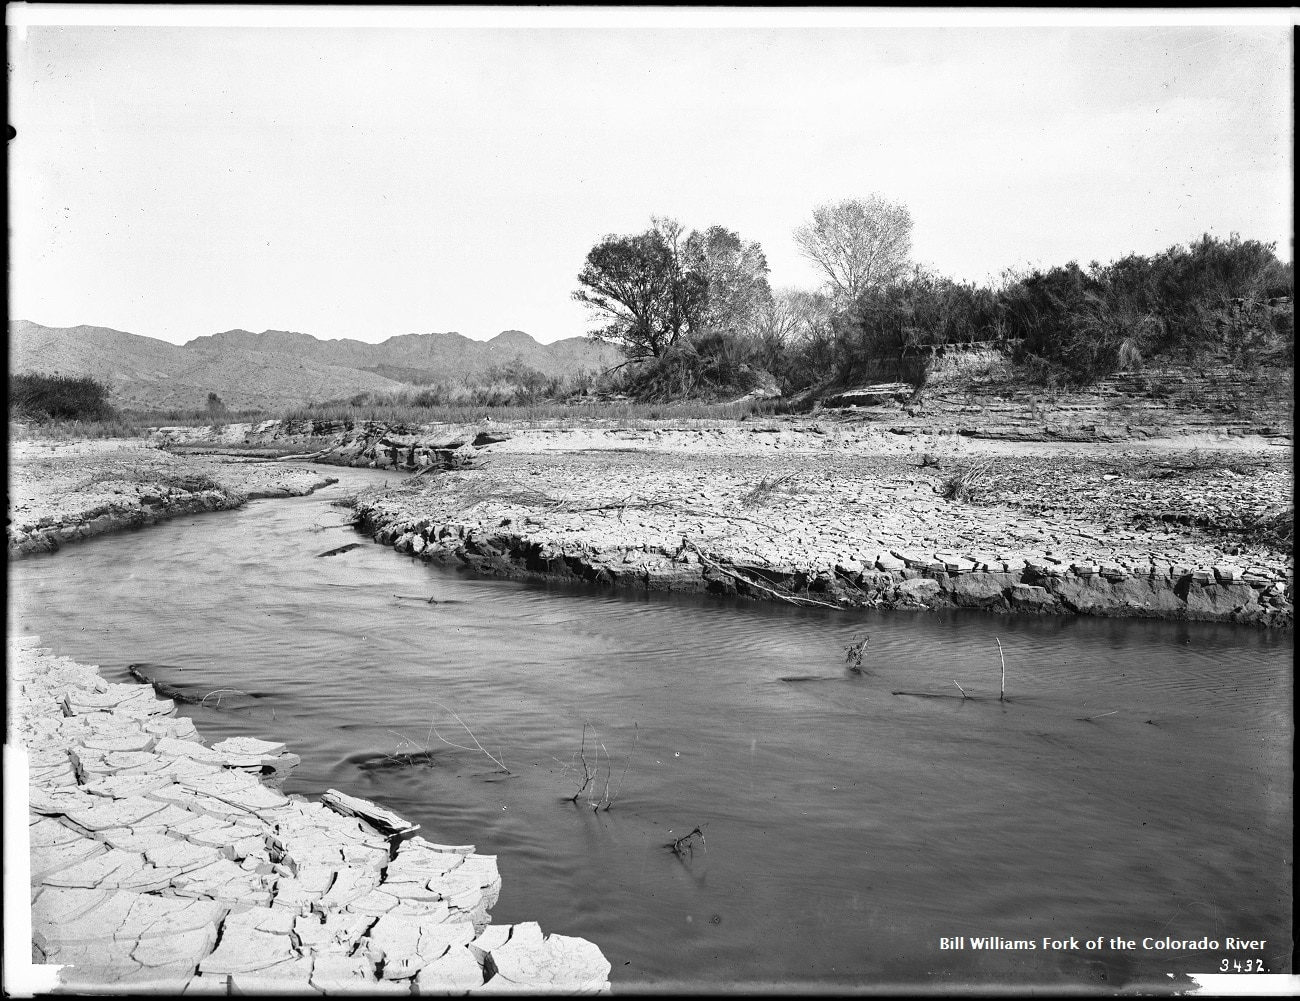 Bill_Williams_Fork_of_the_Colorado_River web